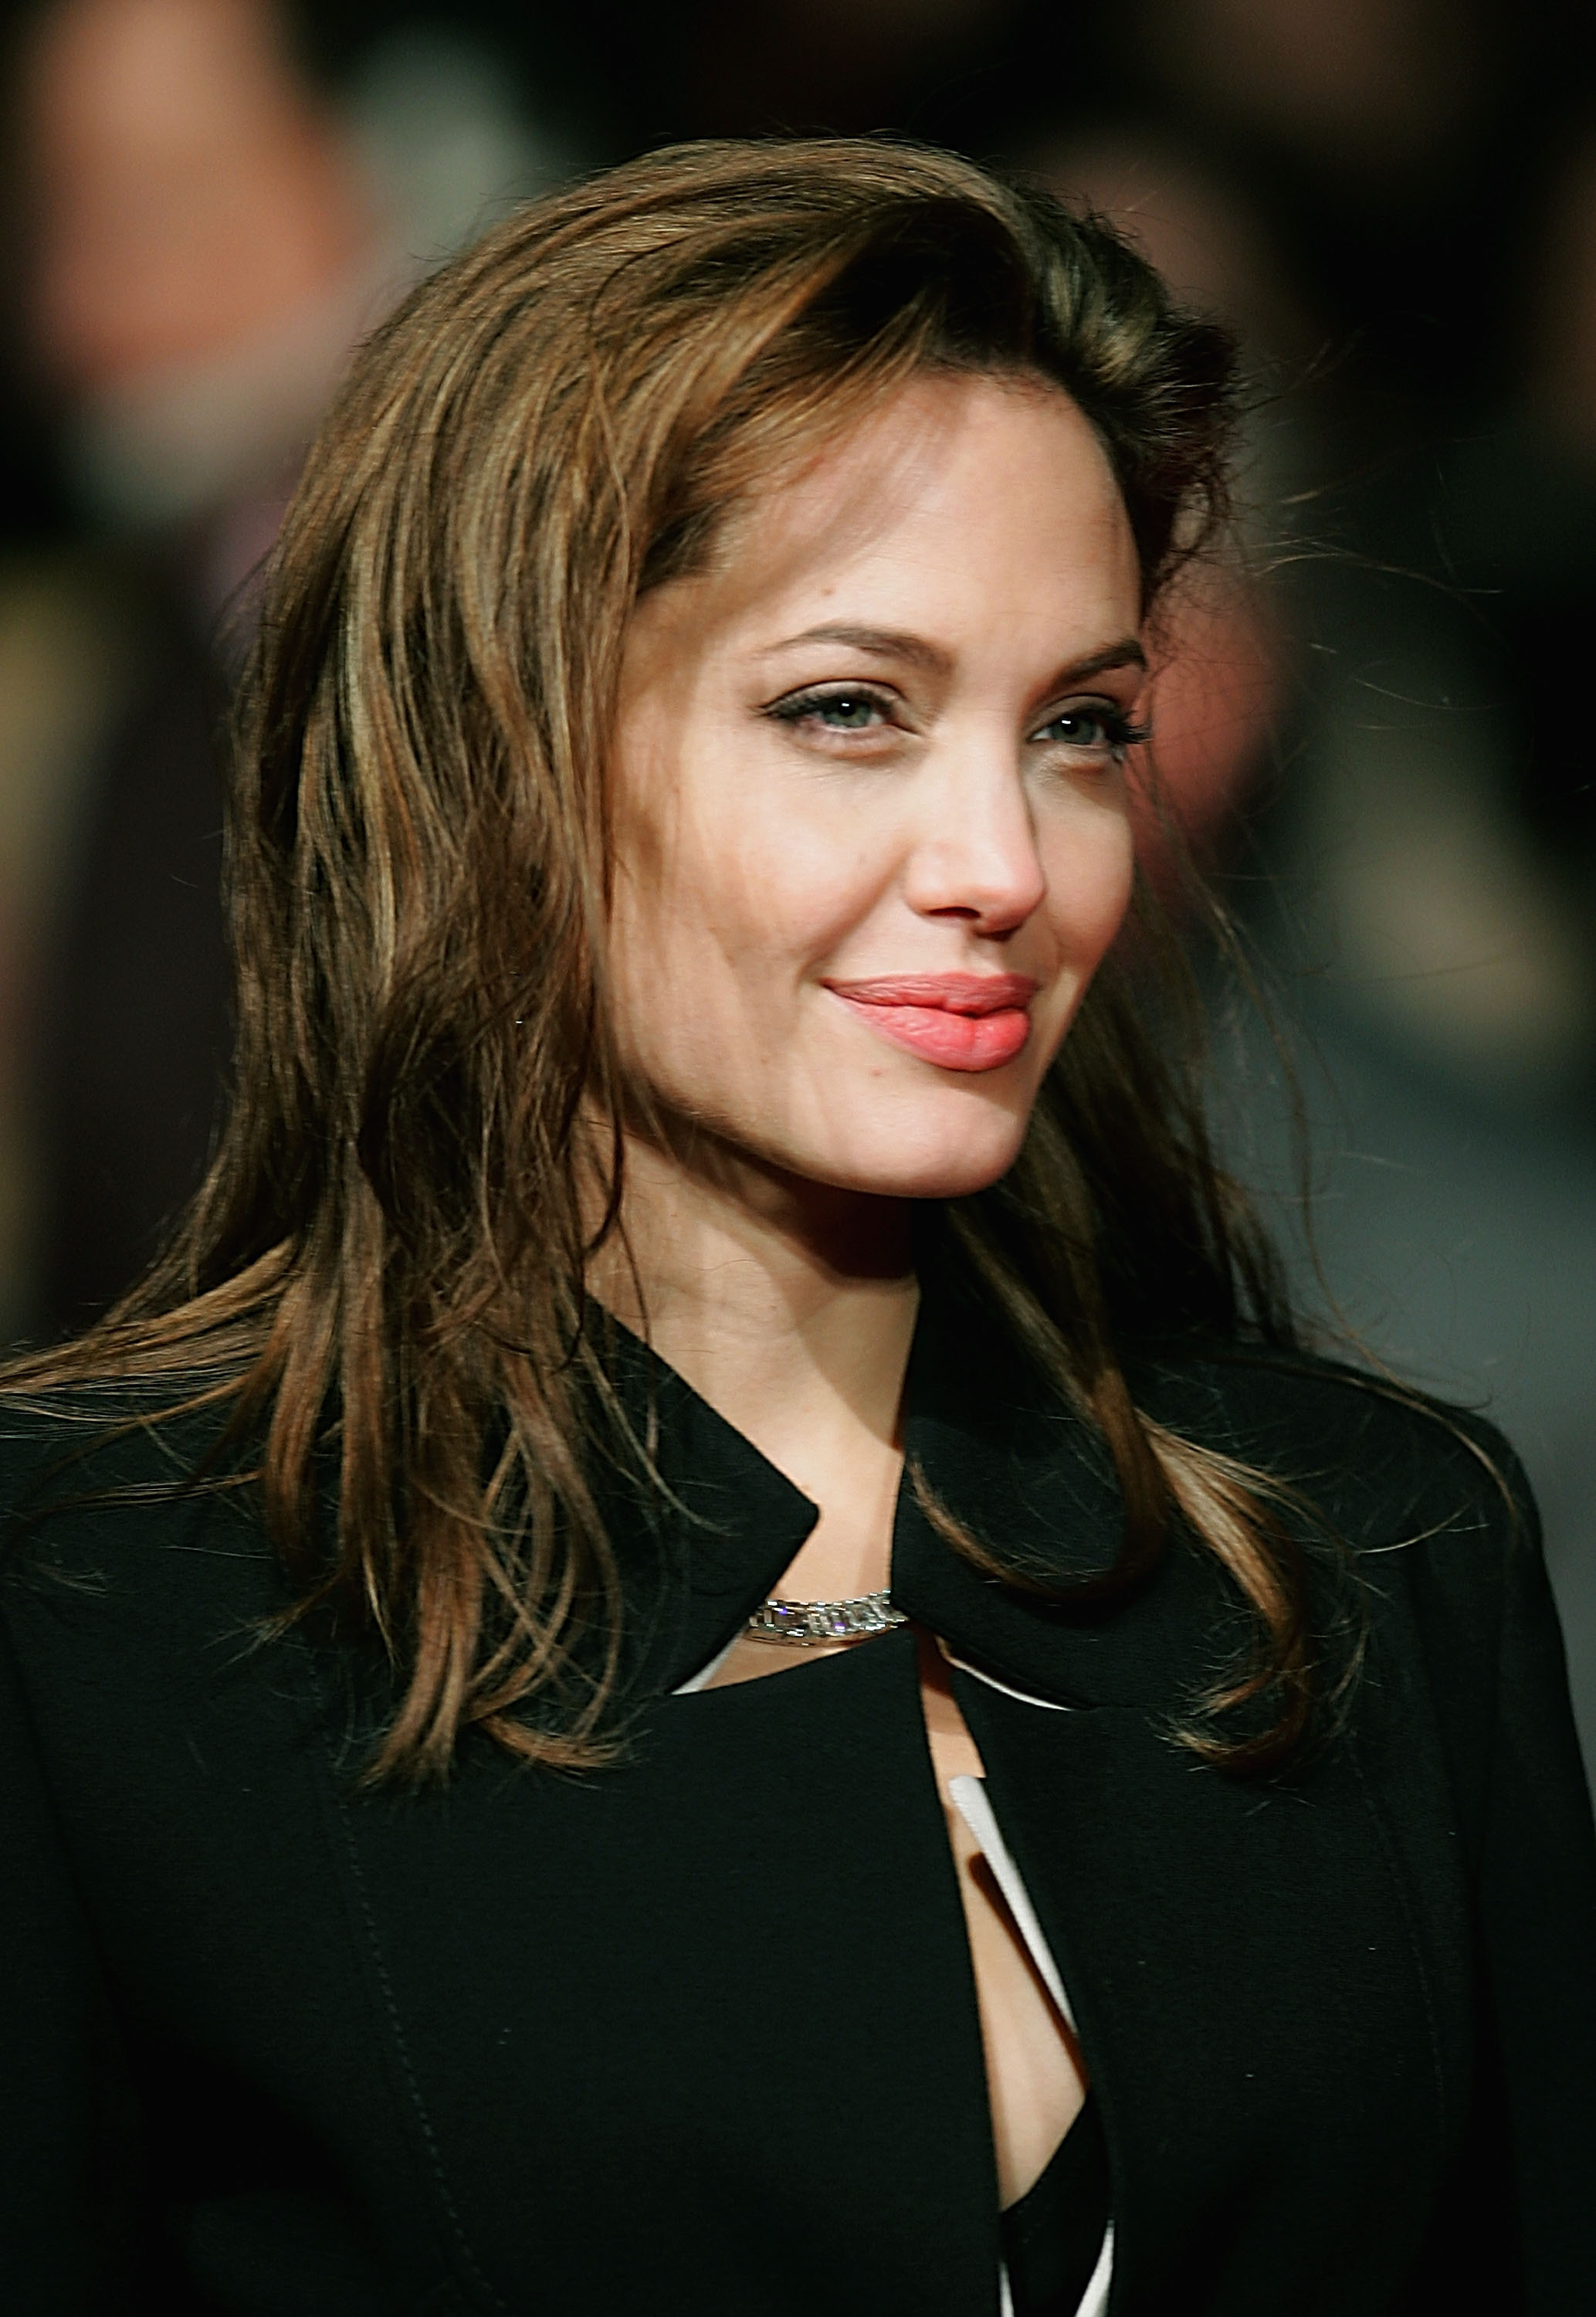 Angelina Jolie HD Wallpapers, Photos, Pictures and images Angelina Jolie